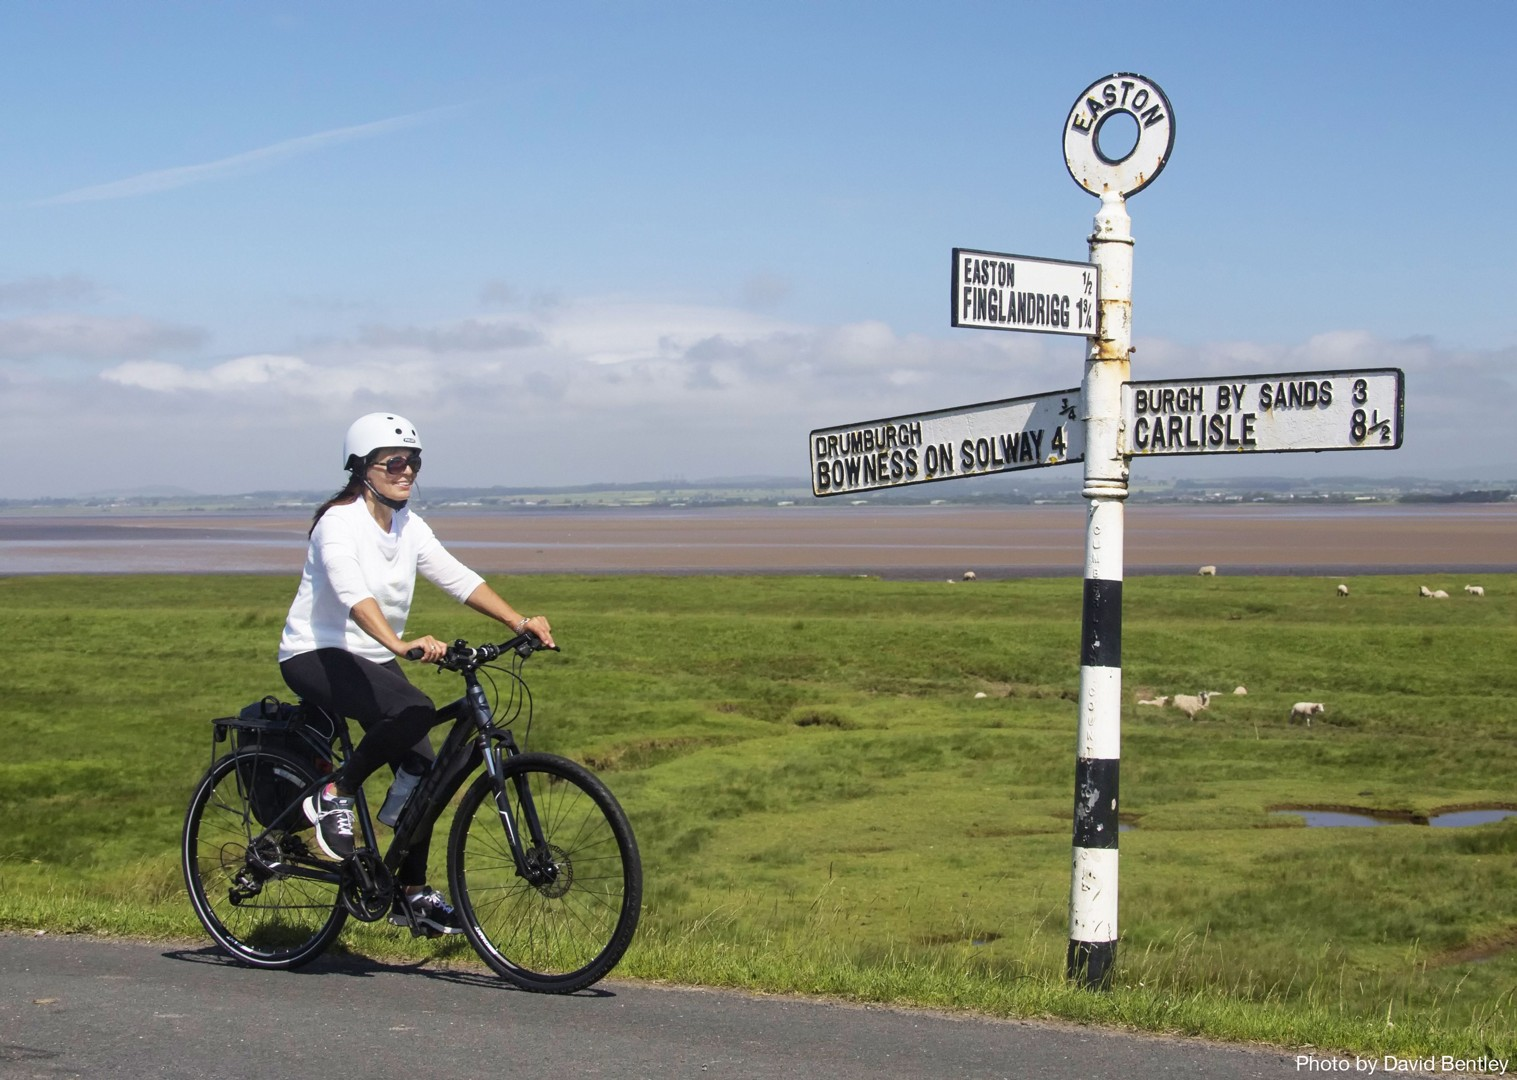 Hadrians-Cycleway-Self-Guided-Leisure-Cycling-Holiday-Follow-the-footsteps-of-the-Roman-Empire.jpg - UK - Hadrian's Cycleway - 4 Days Cycling - Self-Guided Leisure Cycling Holiday - Leisure Cycling